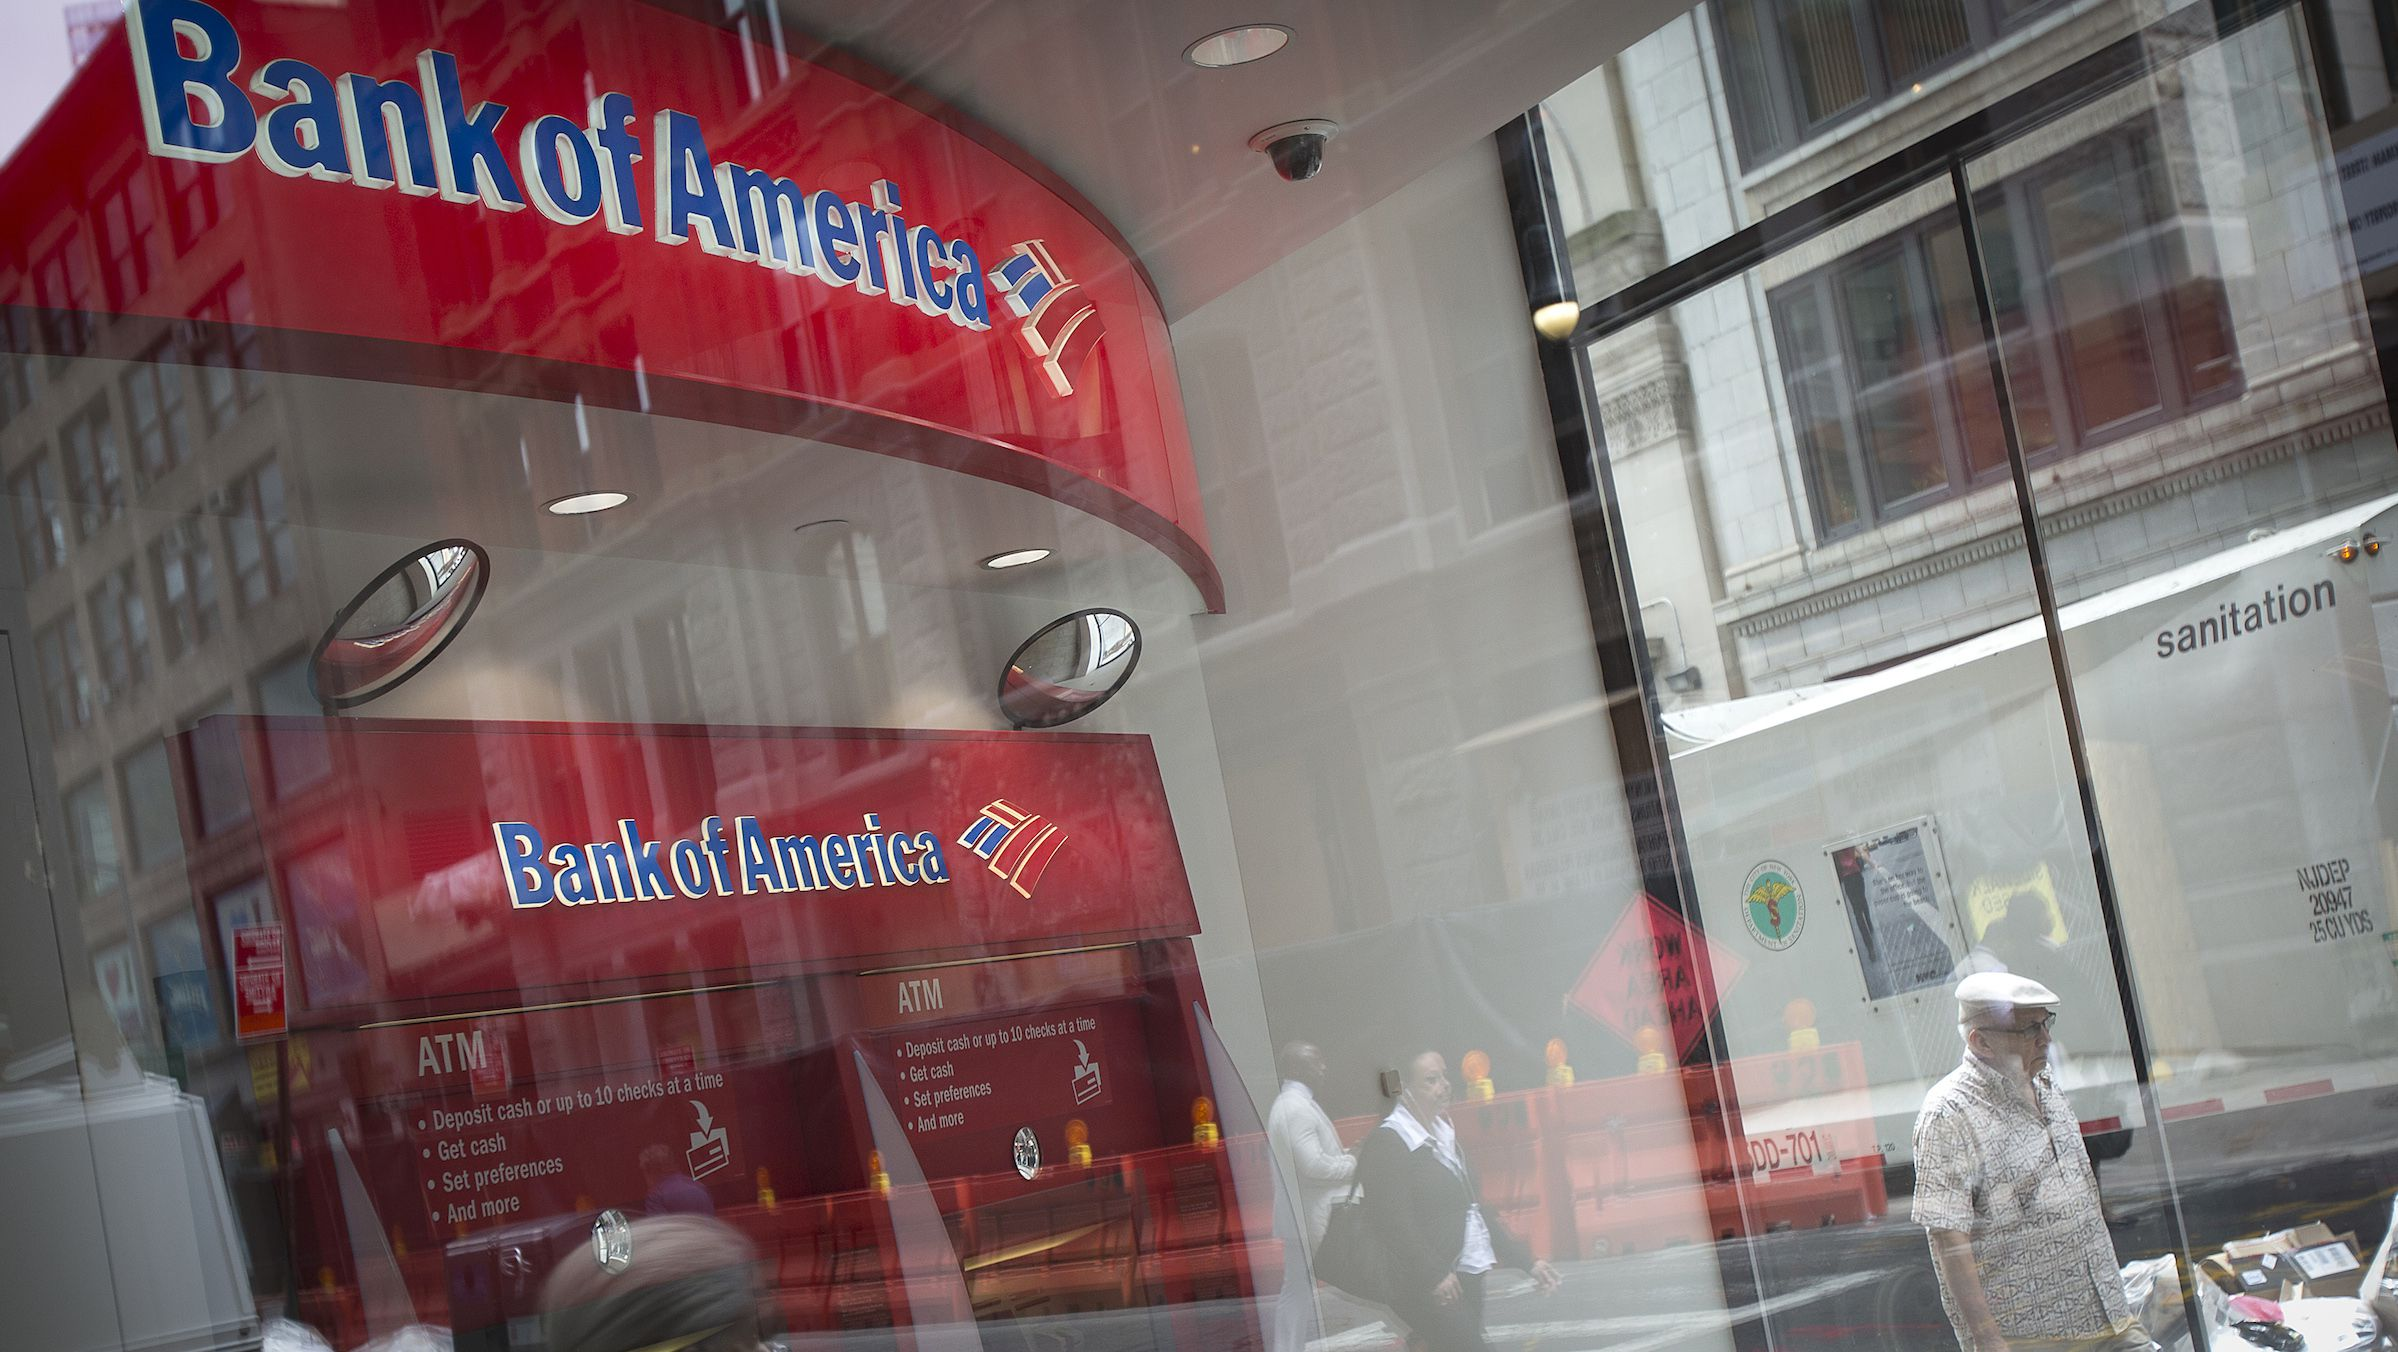 A Bank Of America ATM is pictured in the Manhattan borough of New York August 21, 2014. Bank of America Corp has reached a $16.65 billion settlement with U.S. regulators to settle charges that it misled investors into buying troubled mortgage-backed securities. The settlement announced on Thursday by the U.S. Department of Justice calls for the second-largest U.S. bank to pay a $9.65 billion cash penalty, and provide $7 billion of consumer relief to struggling homeowners and communities.    REUTERS/Carlo Allegri (UNITED STATES - Tags: CRIME LAW BUSINESS POLITICS) - RTR439I6